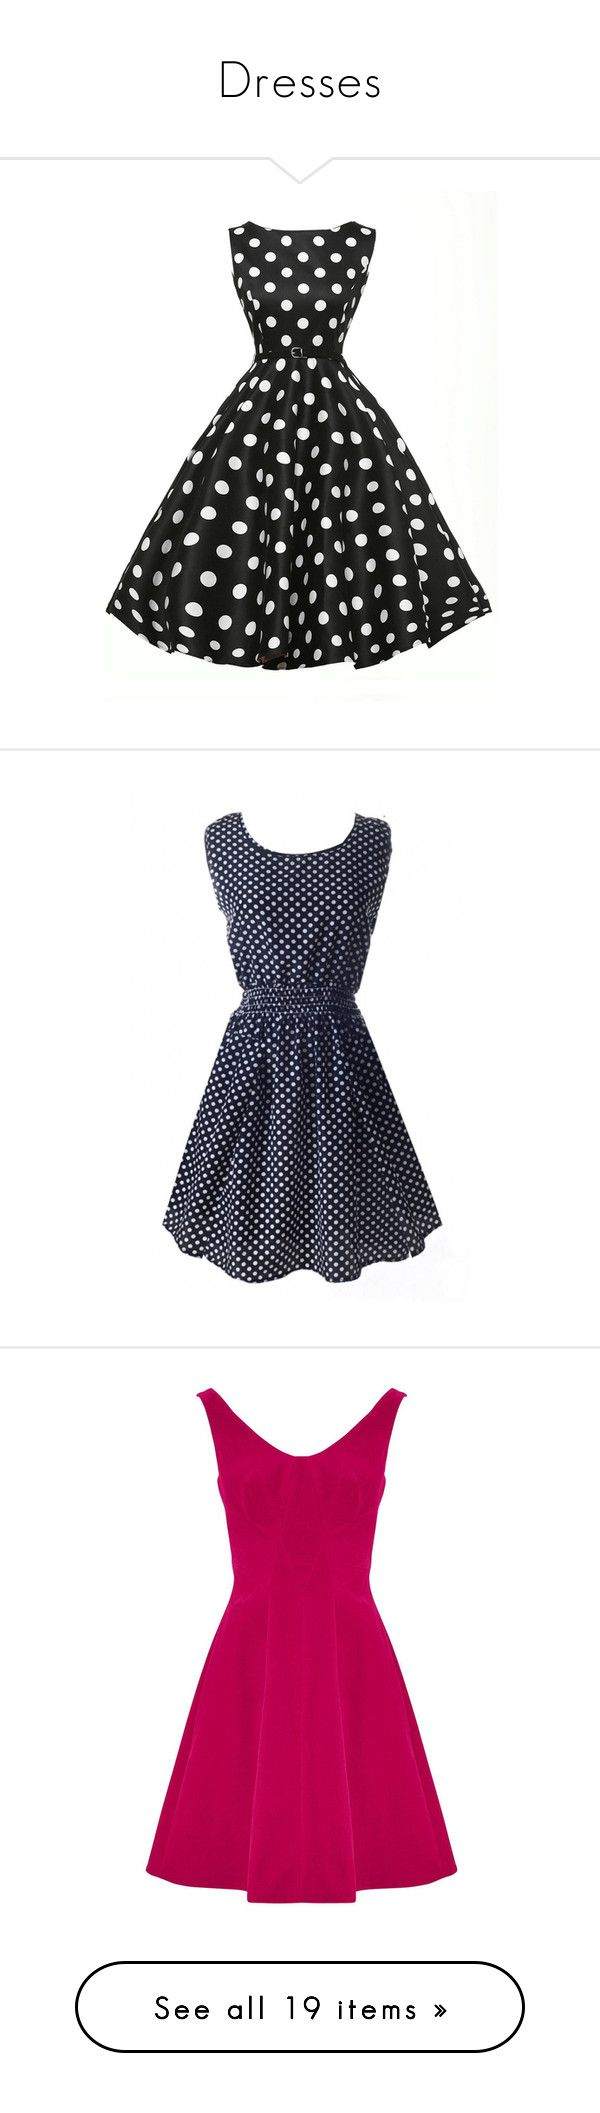 """Dresses"" by awidensky ❤ liked on Polyvore featuring dresses, black, black and white polka dot dress, sleeveless dress, sleeveless swing dress, long-sleeve mini dress, black and white dresses, cotton polka dot dress, blue dot dress and polka dot tea dress"